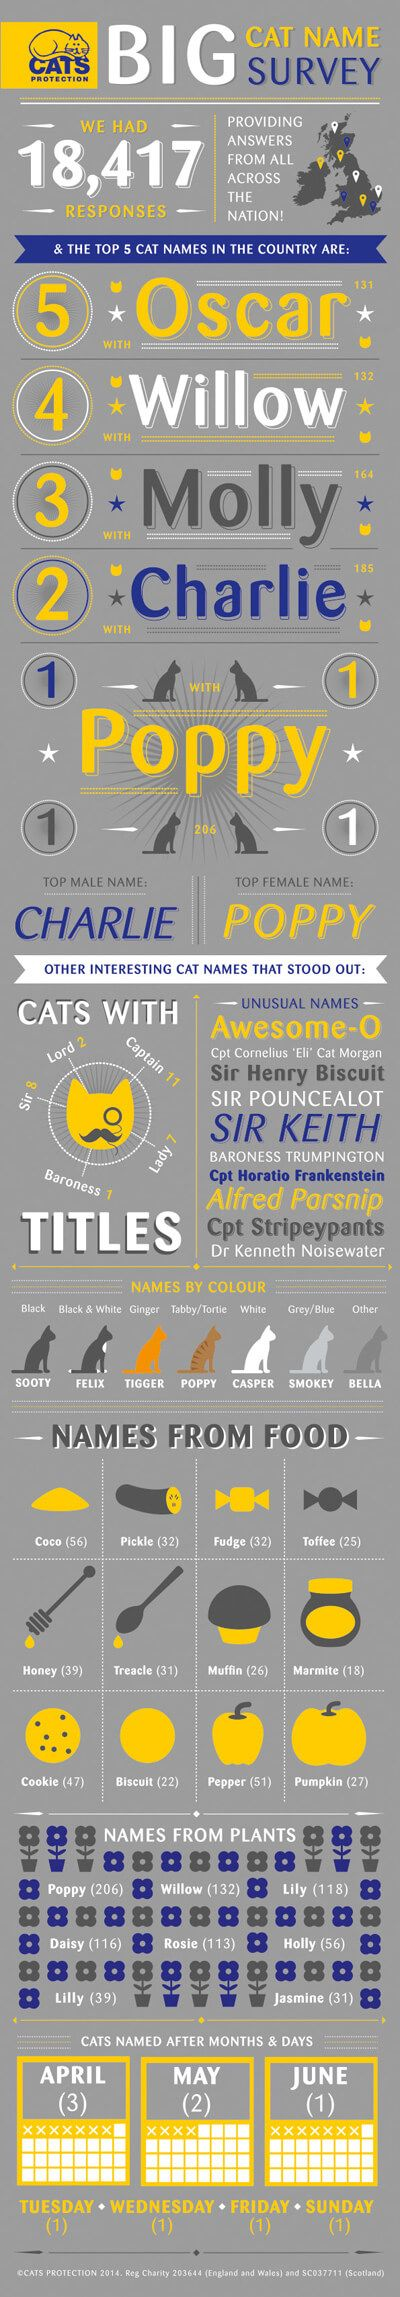 Top cat names infographic